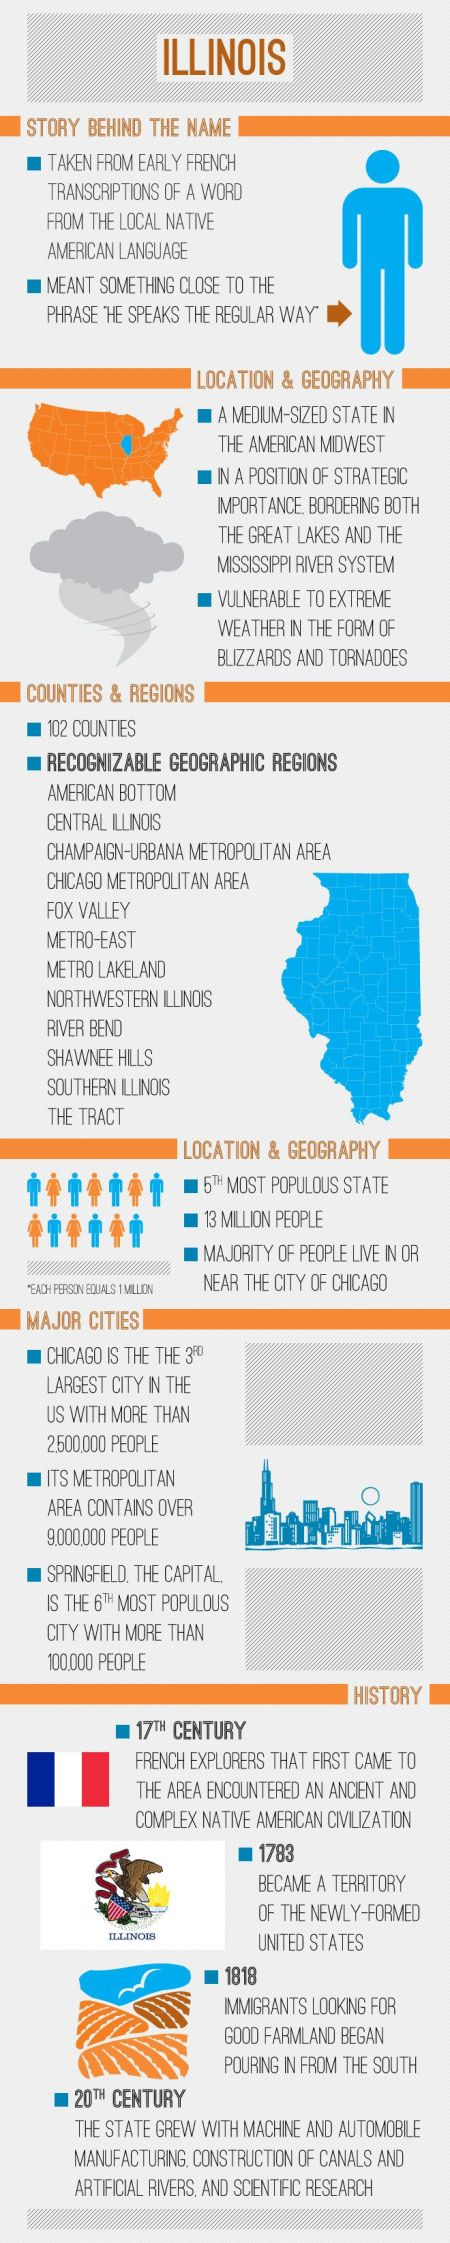 Illinois History Facts